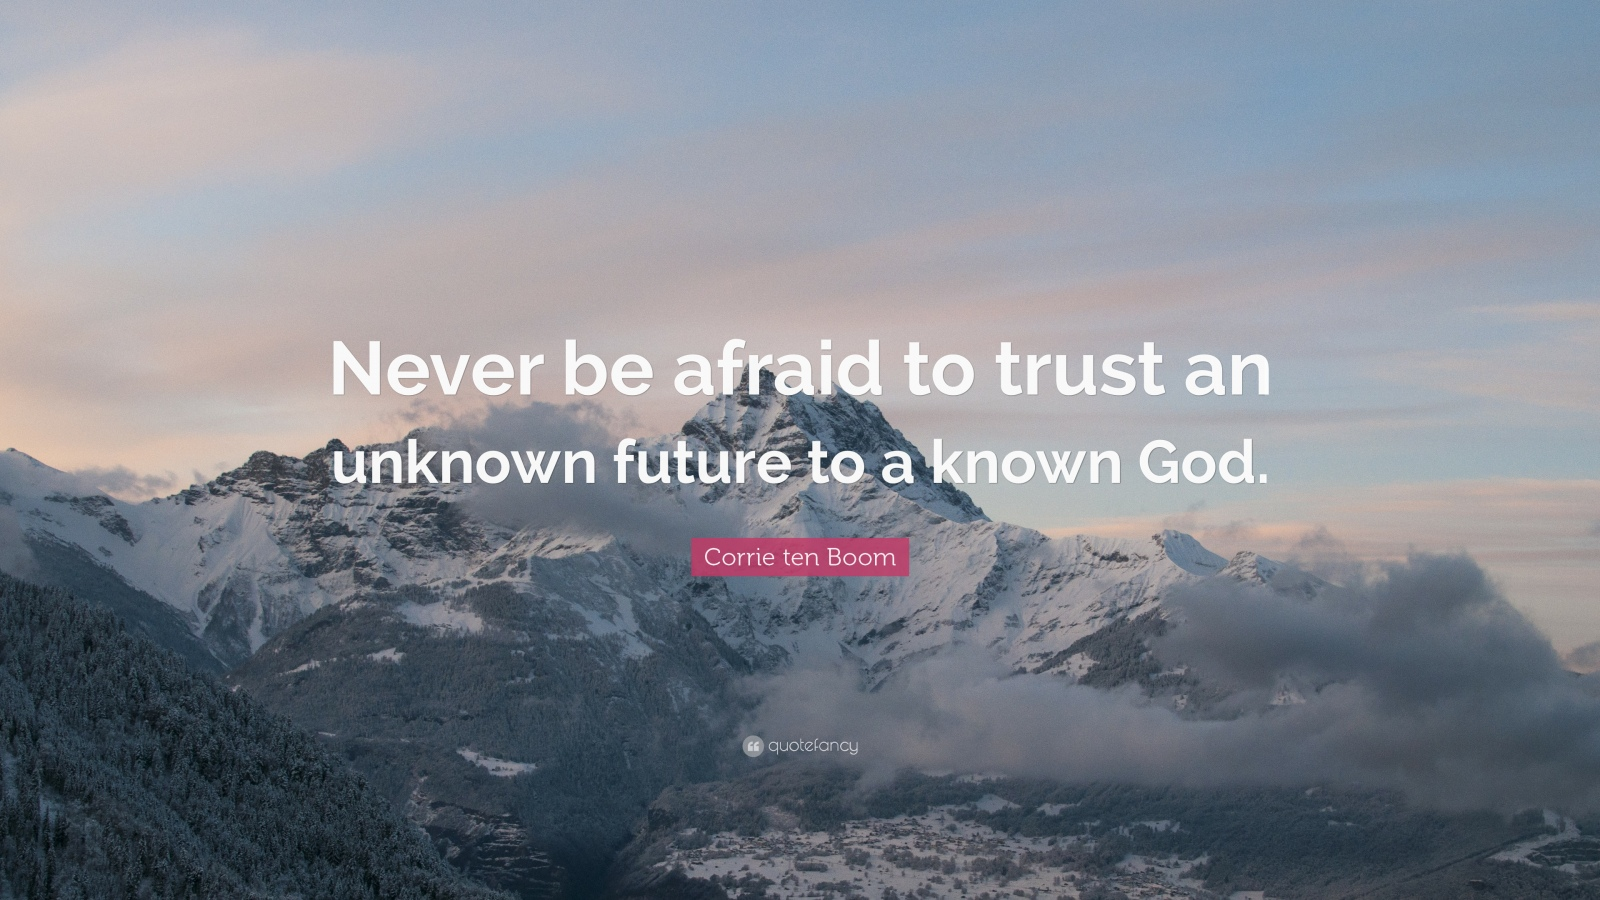 43450-corrie-ten-boom-quote-never-be-afraid-to-trust-an-unknown-future